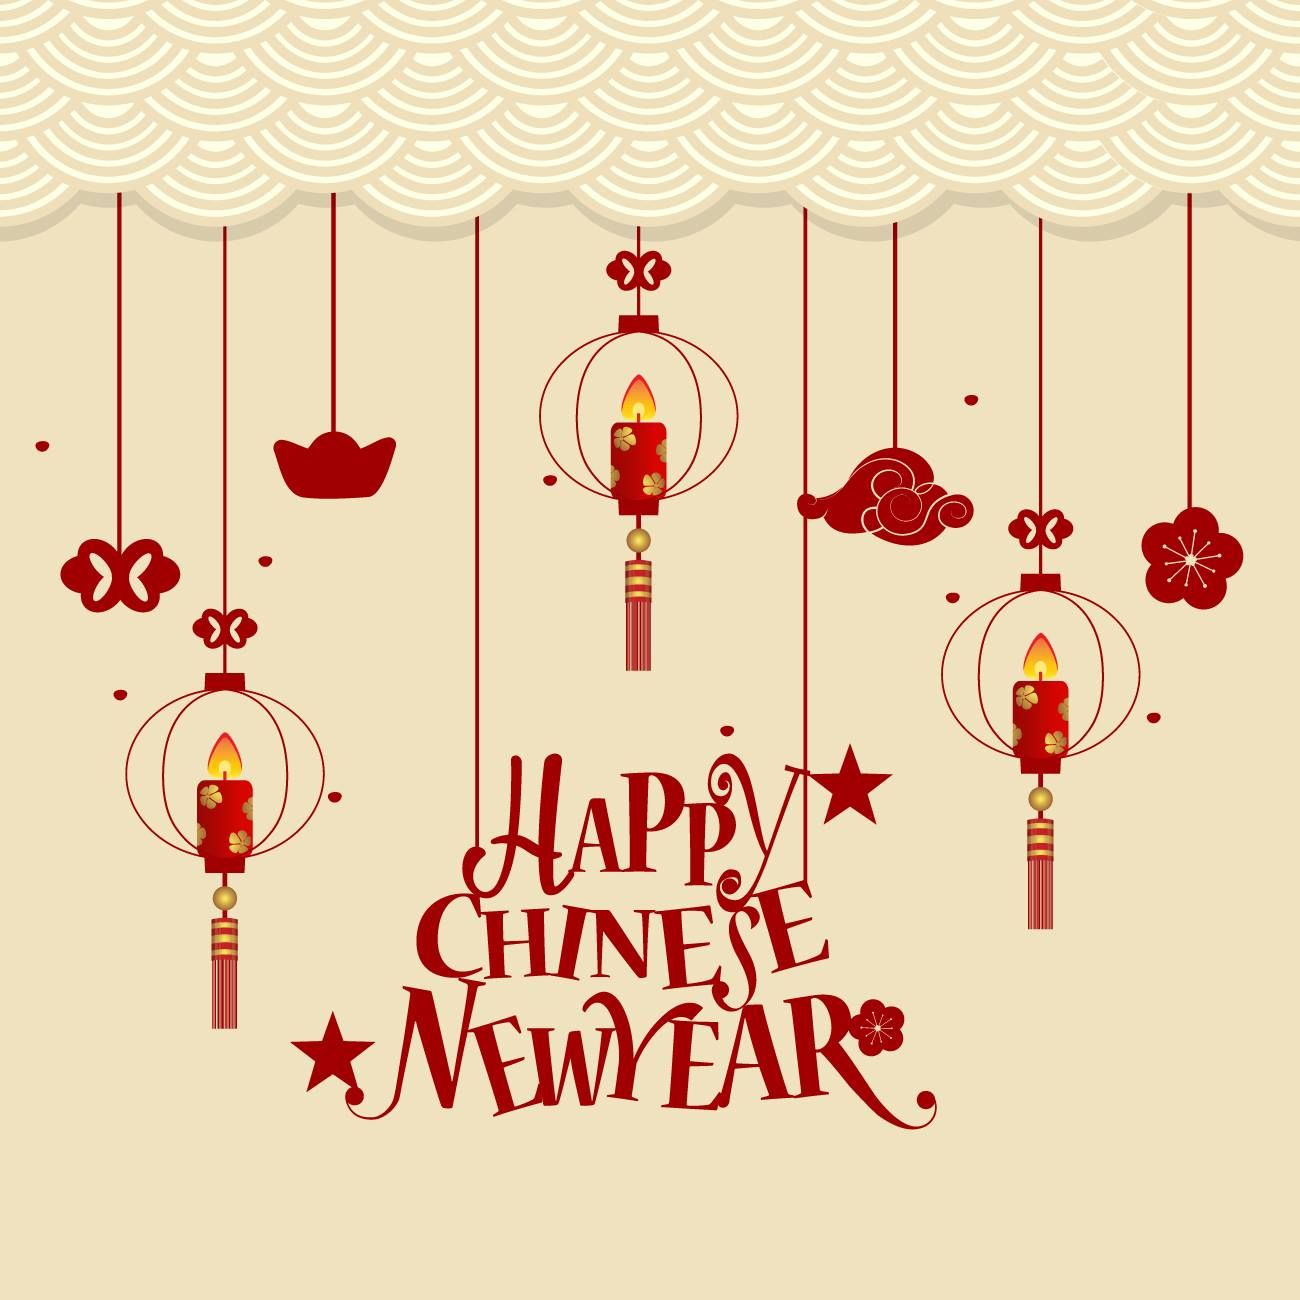 Happy Chinese New Year! to the year of the Rooster